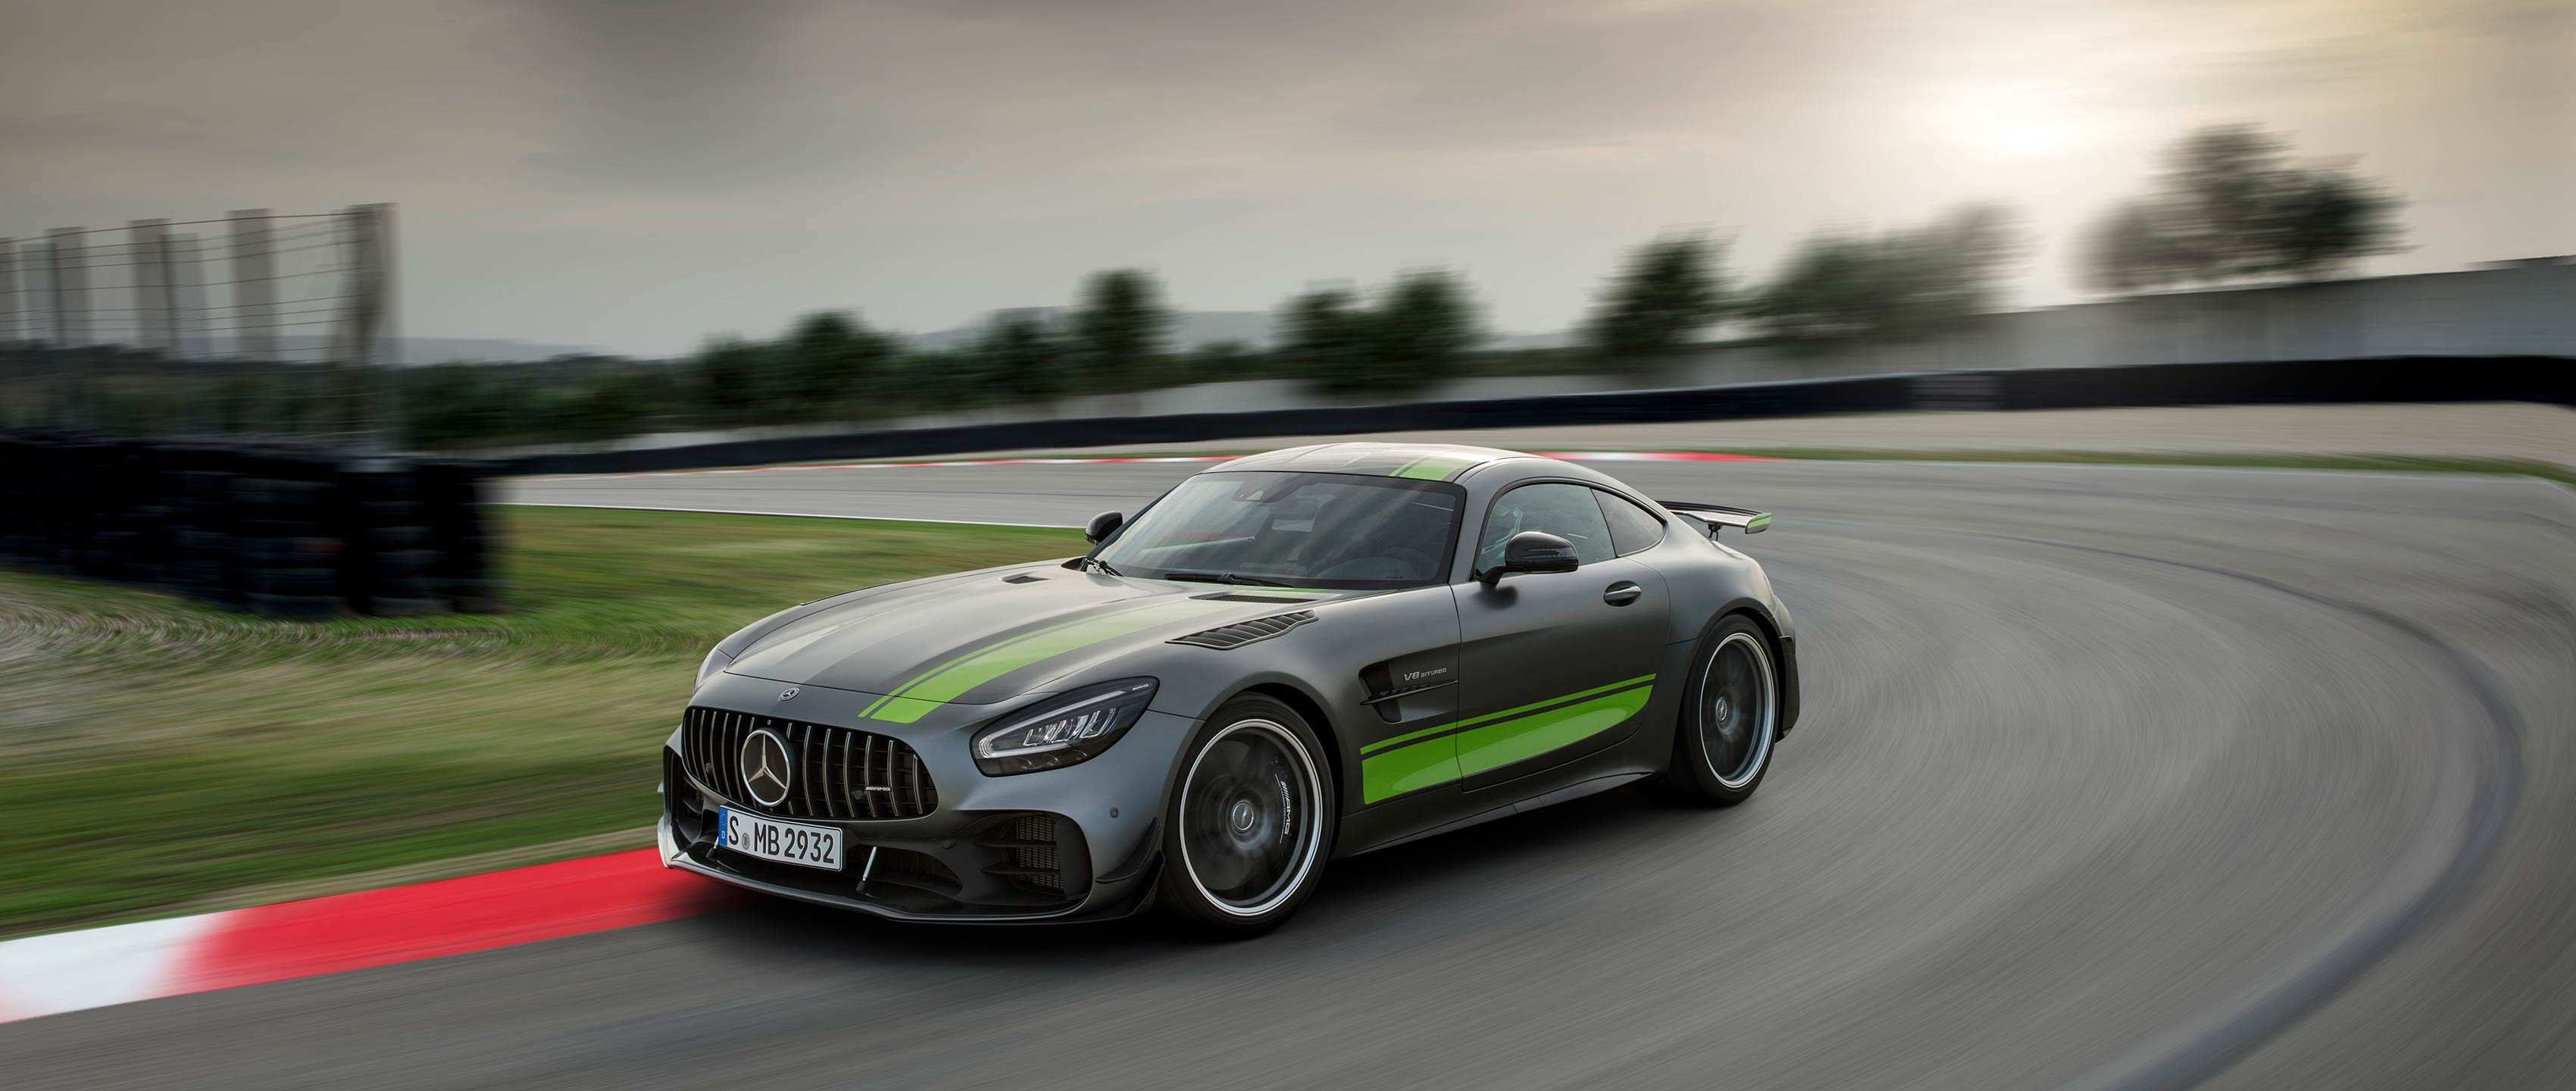 72 New Mercedes 2019 Amg Gt Price And Review